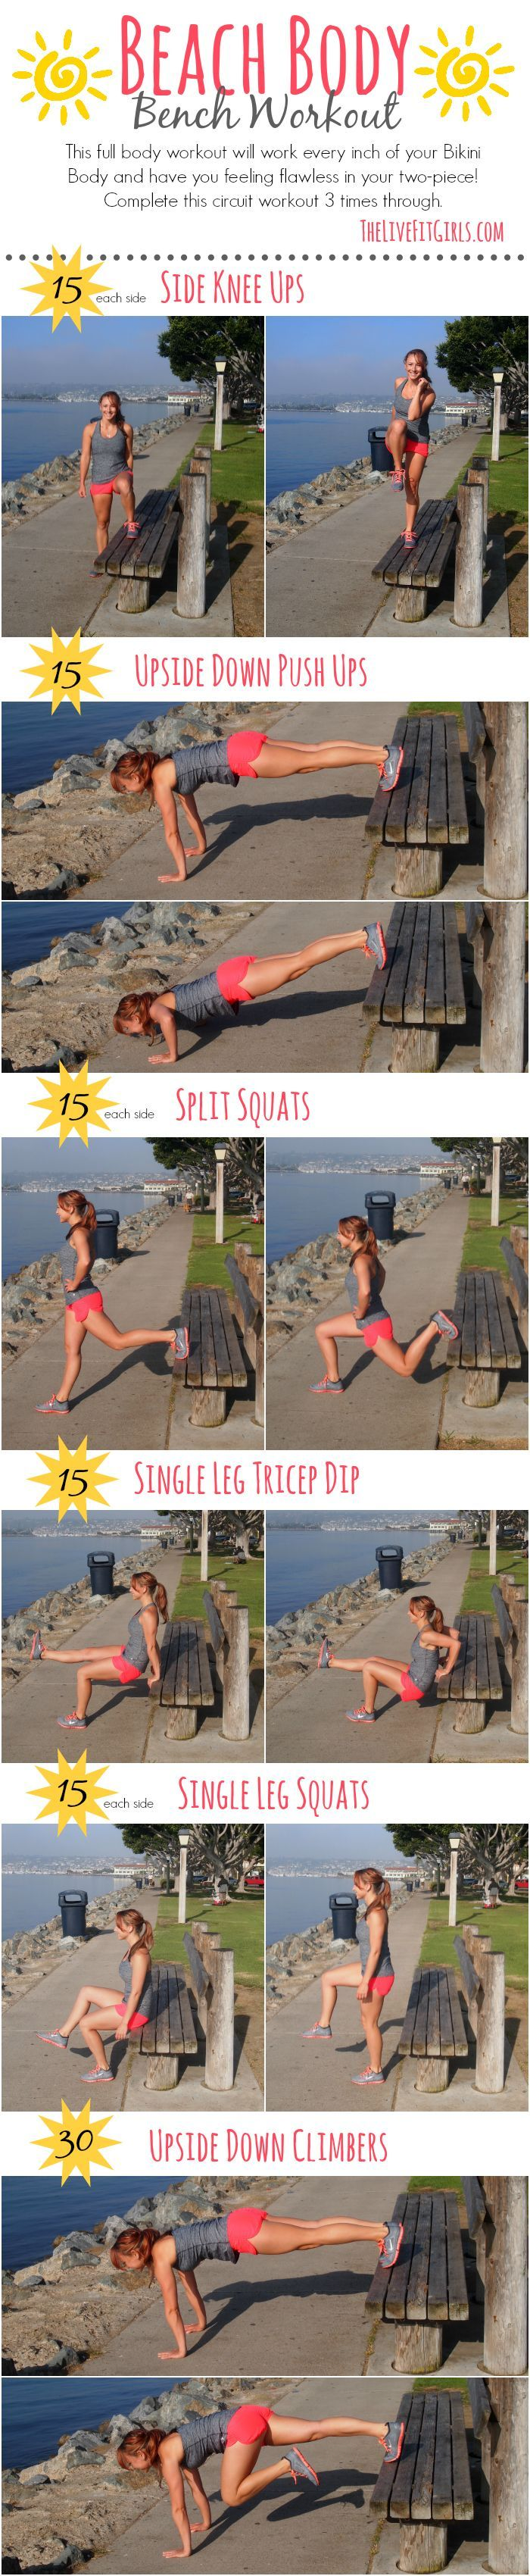 Beach Body Bench Workout ☀️ a full body workout that will get you bikini ready in no time!